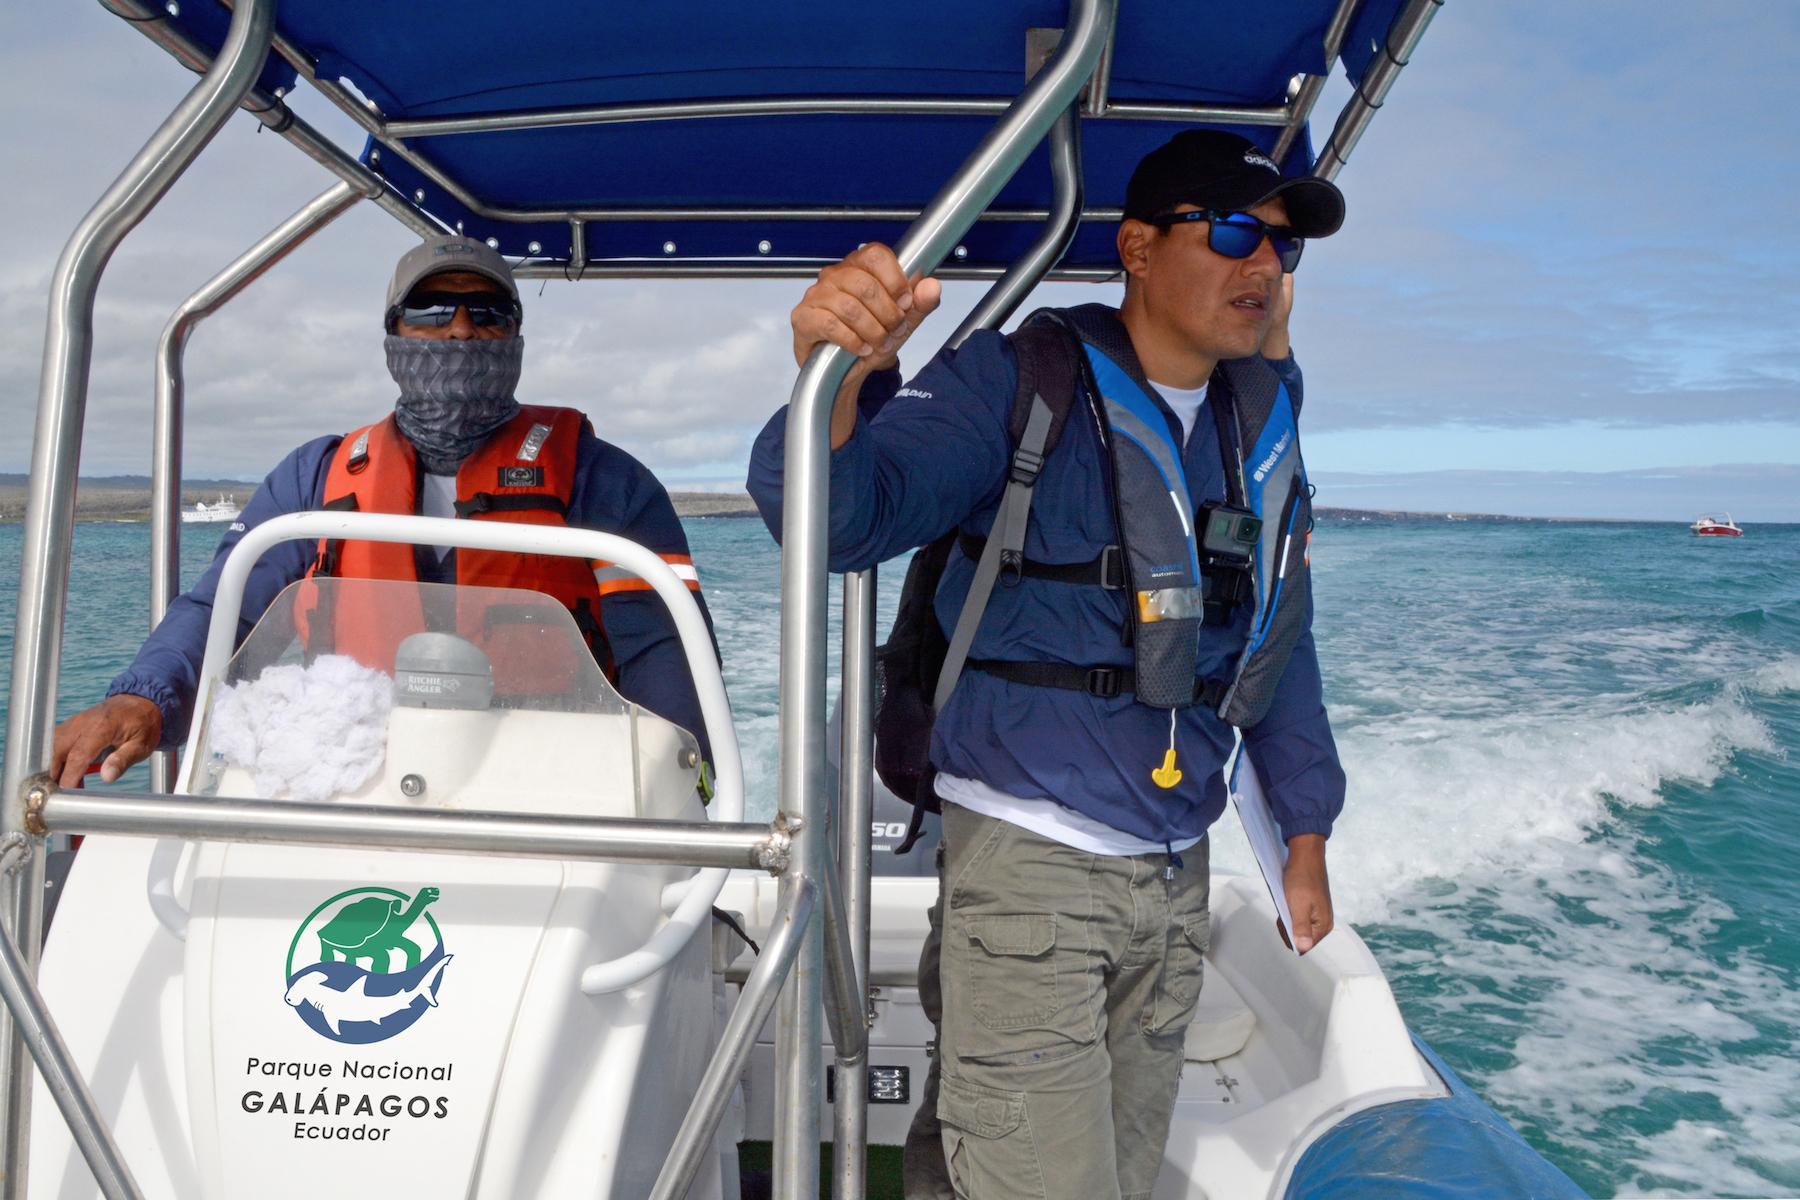 Galapagos Officials Patrolling